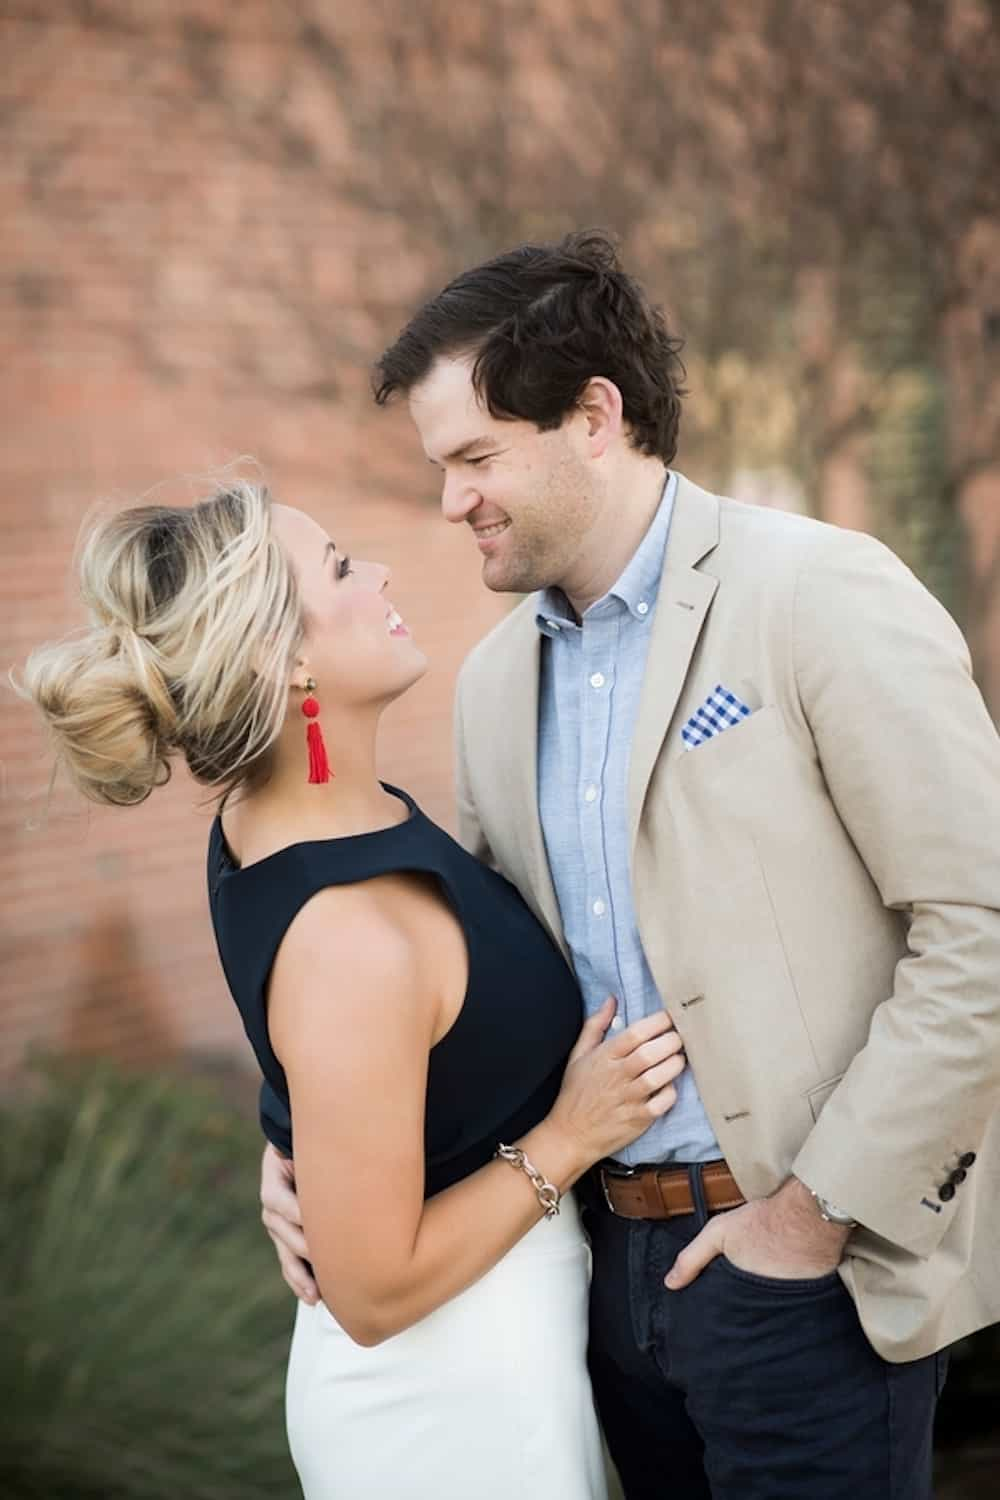 4 Guilday_Steger_AislinnKatePhotography_ENGAGEMENTSLauraPete0701_low